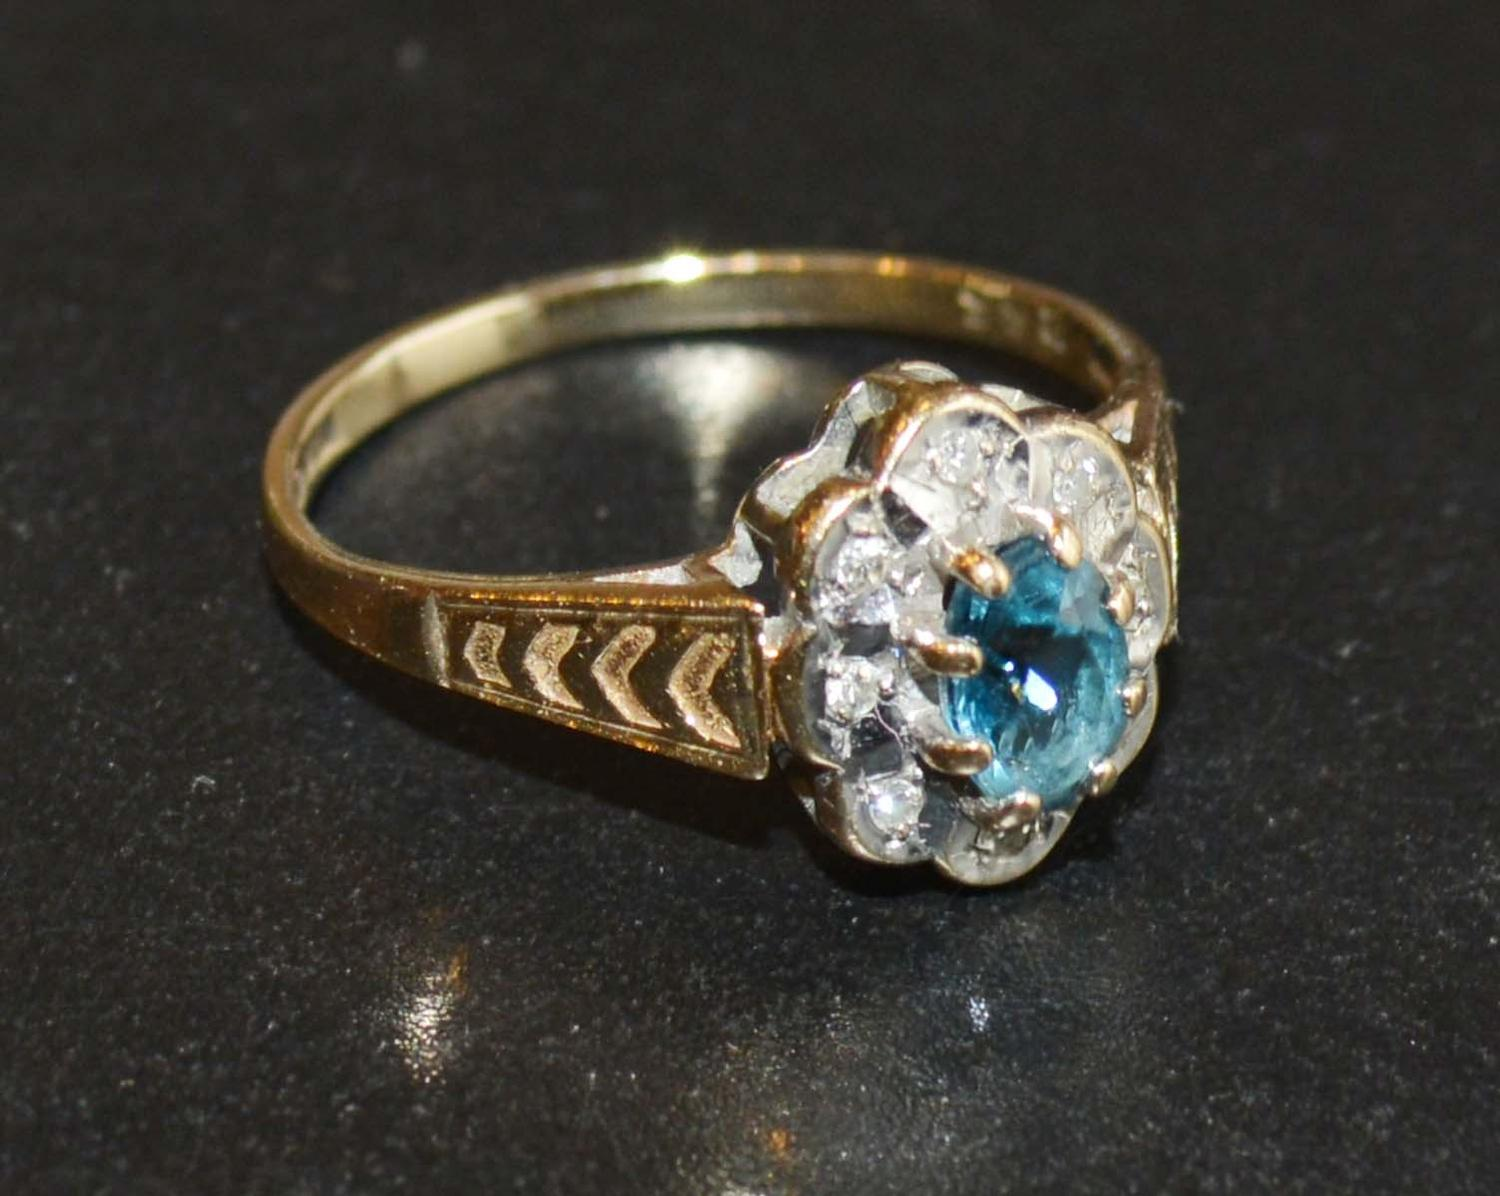 Lot 220 - A 9 Carat Gold Aquamarine and Diamond Ring set with an oval aquamarine and surrounded by diamonds